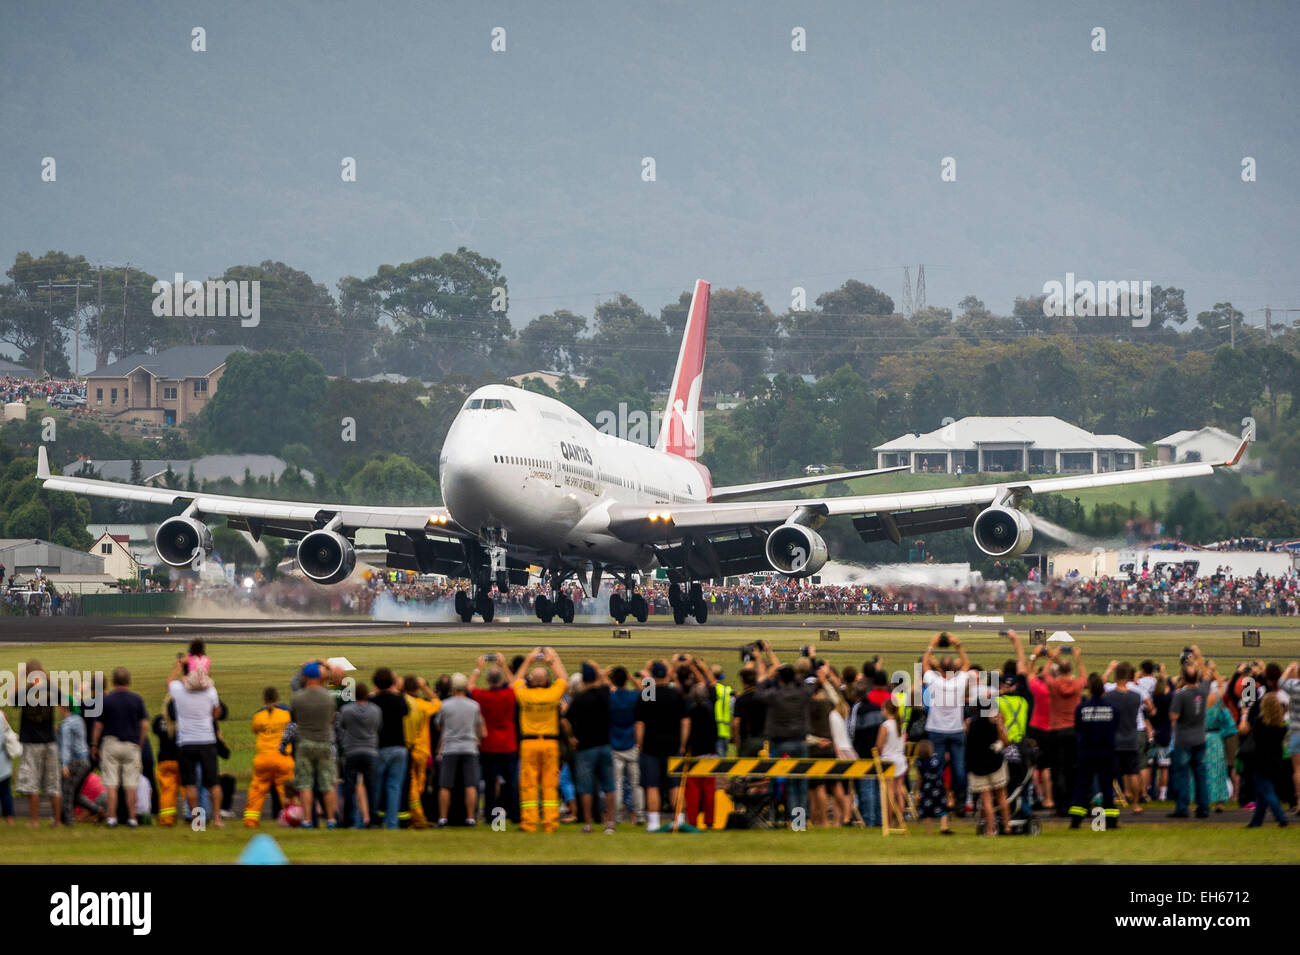 Sydney, Australia. 8th March, 2015. Qantas retired its first Boeing 747-400, VH-OJA, which flew a record non-stop Stock Photo